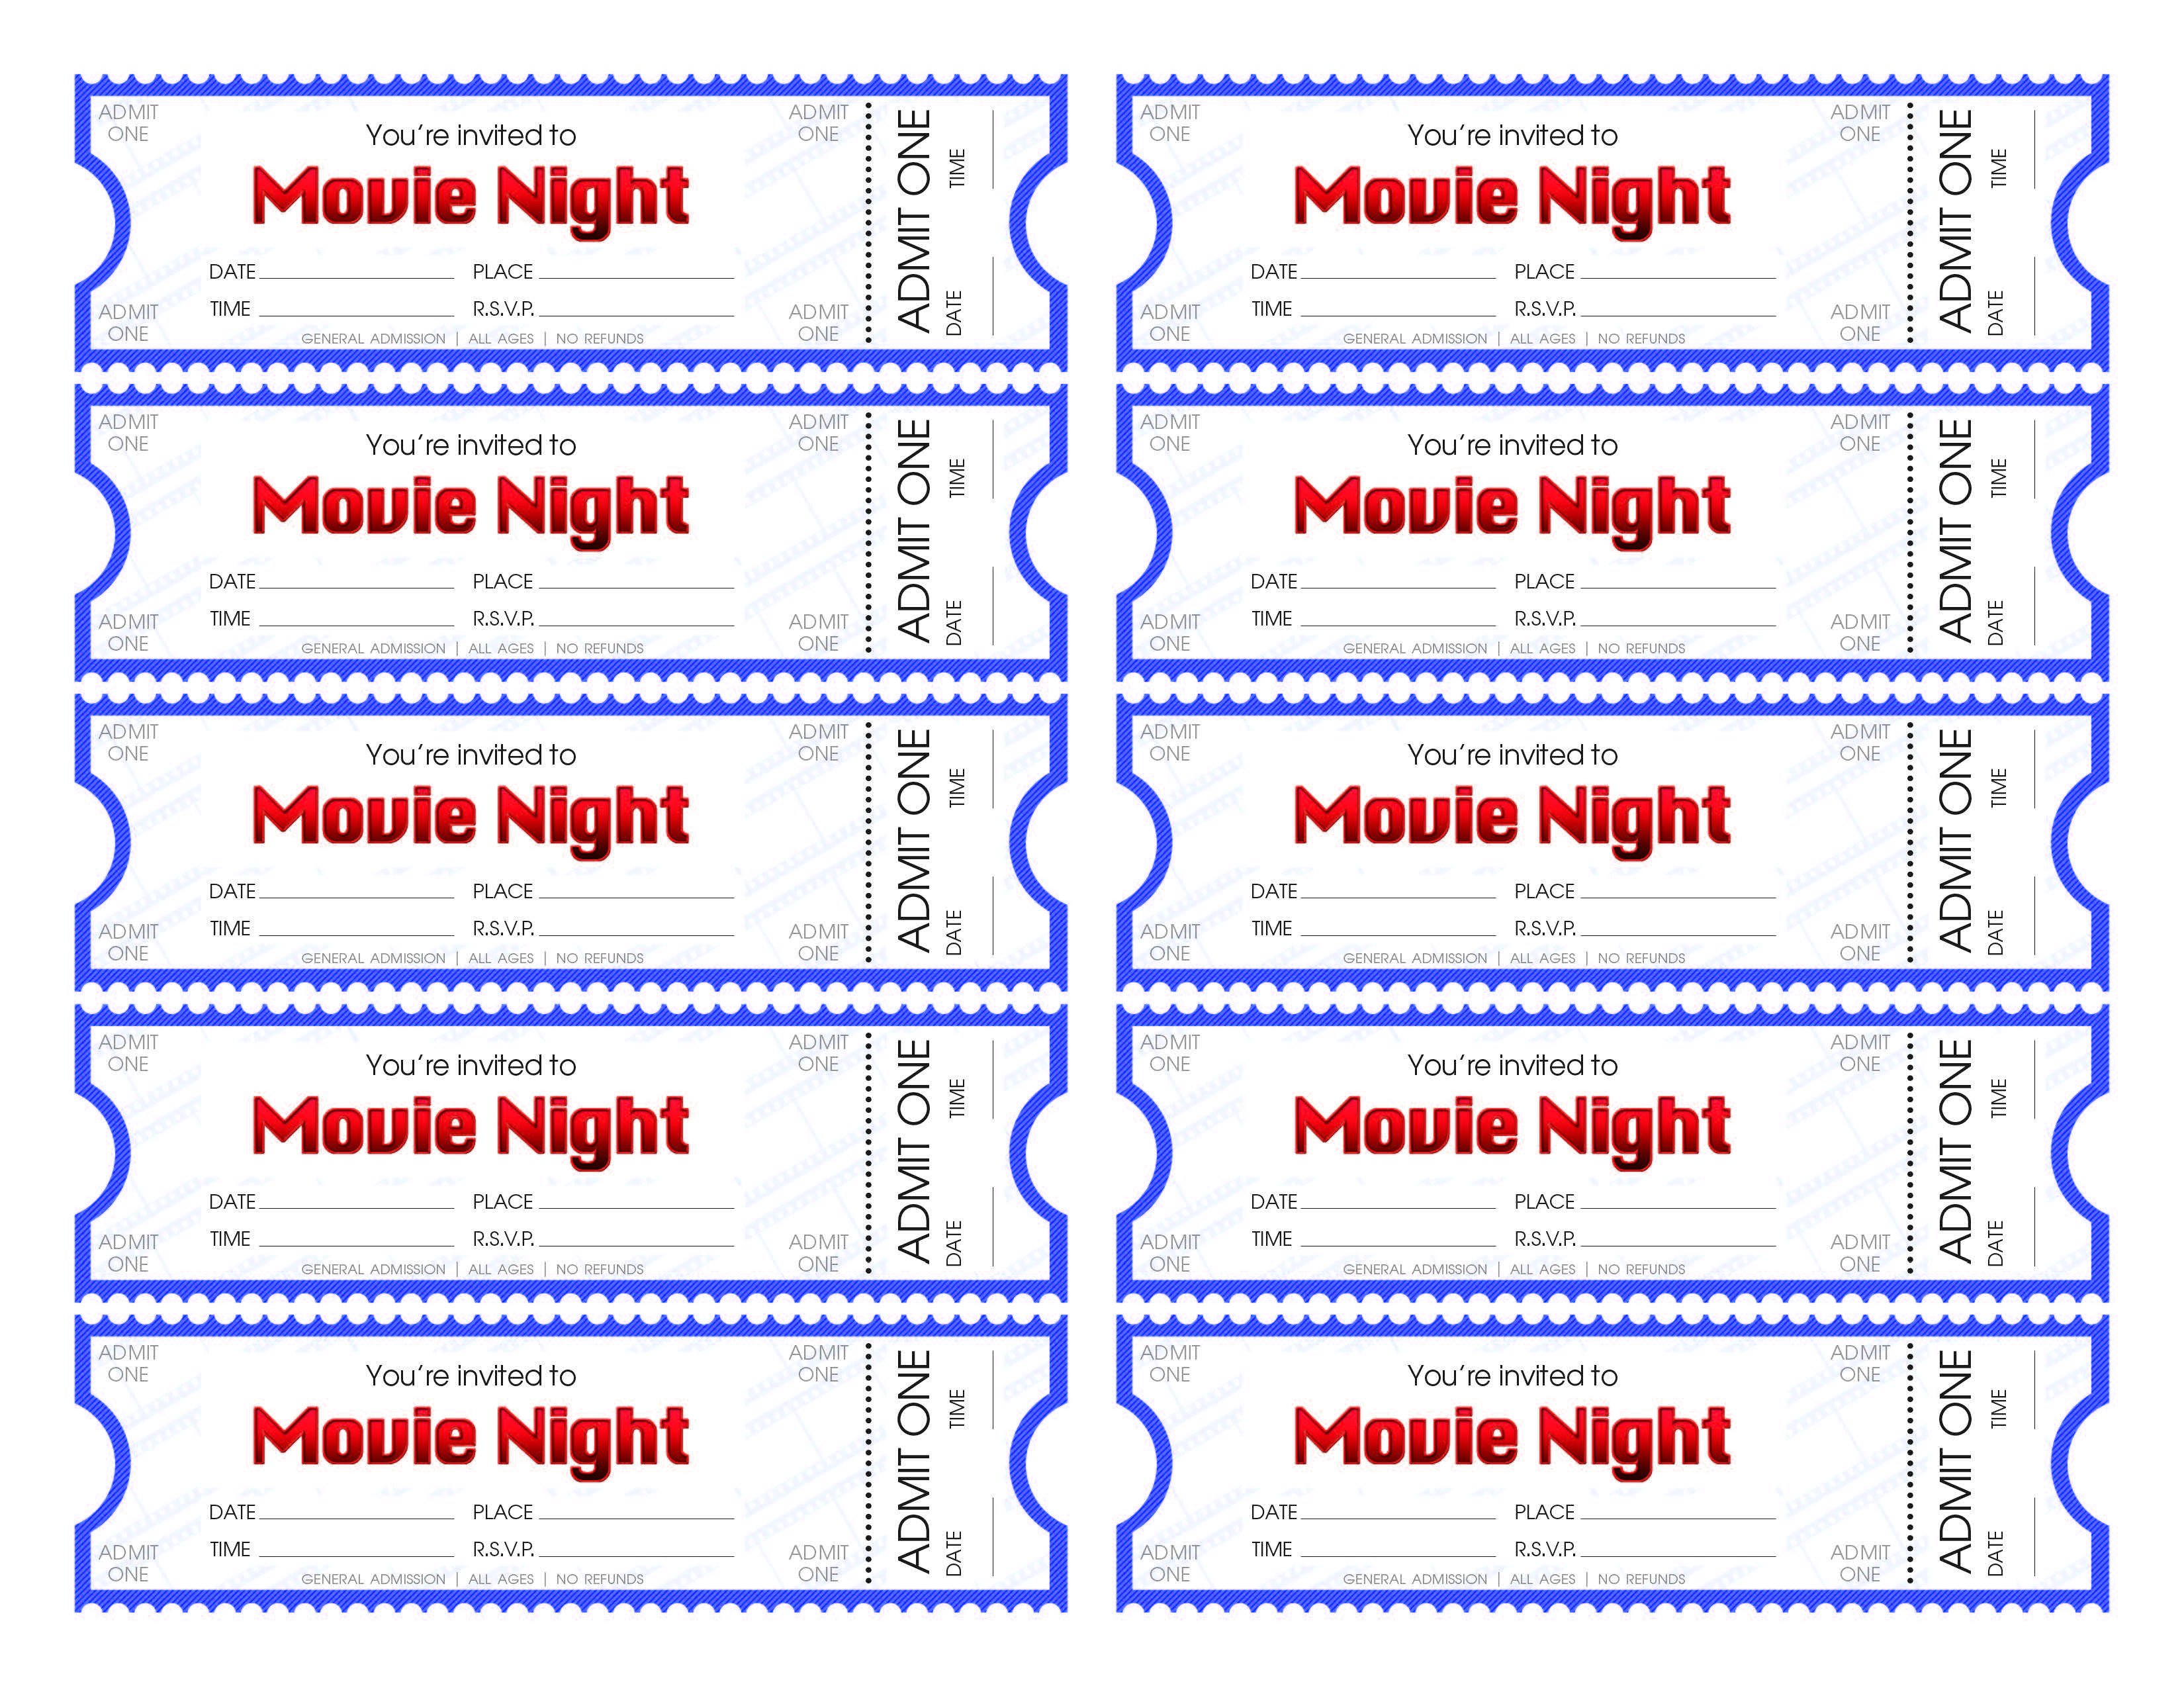 Free Movie Ticket Template Make Your Own Movie Night Tickets